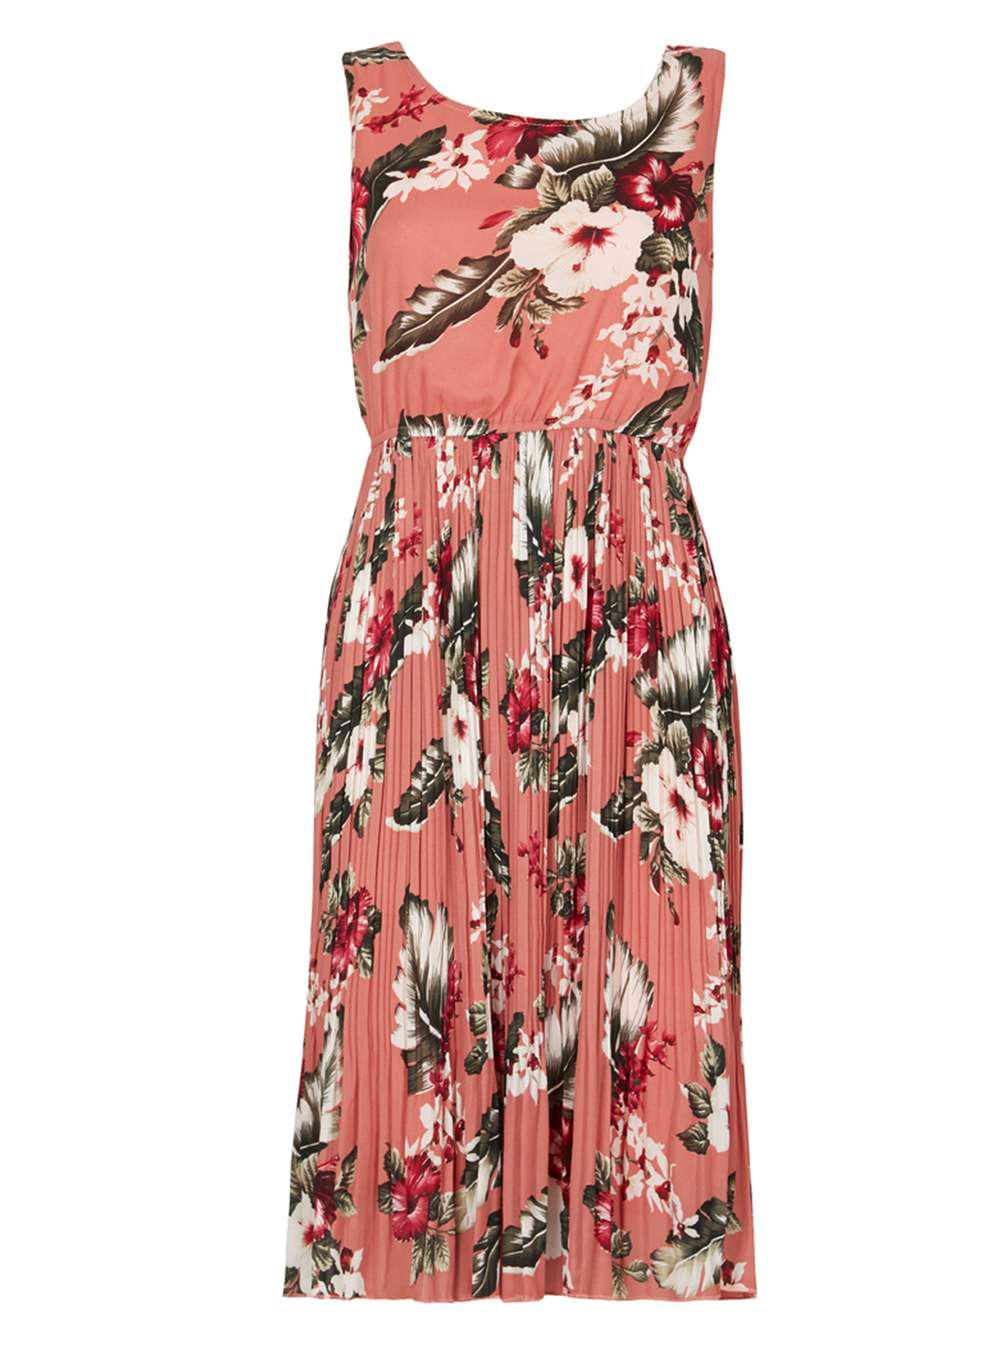 Lyst - Dorothy Perkins Tenki Coral Floral Midi Skater Dress in Pink 4a696dc2b